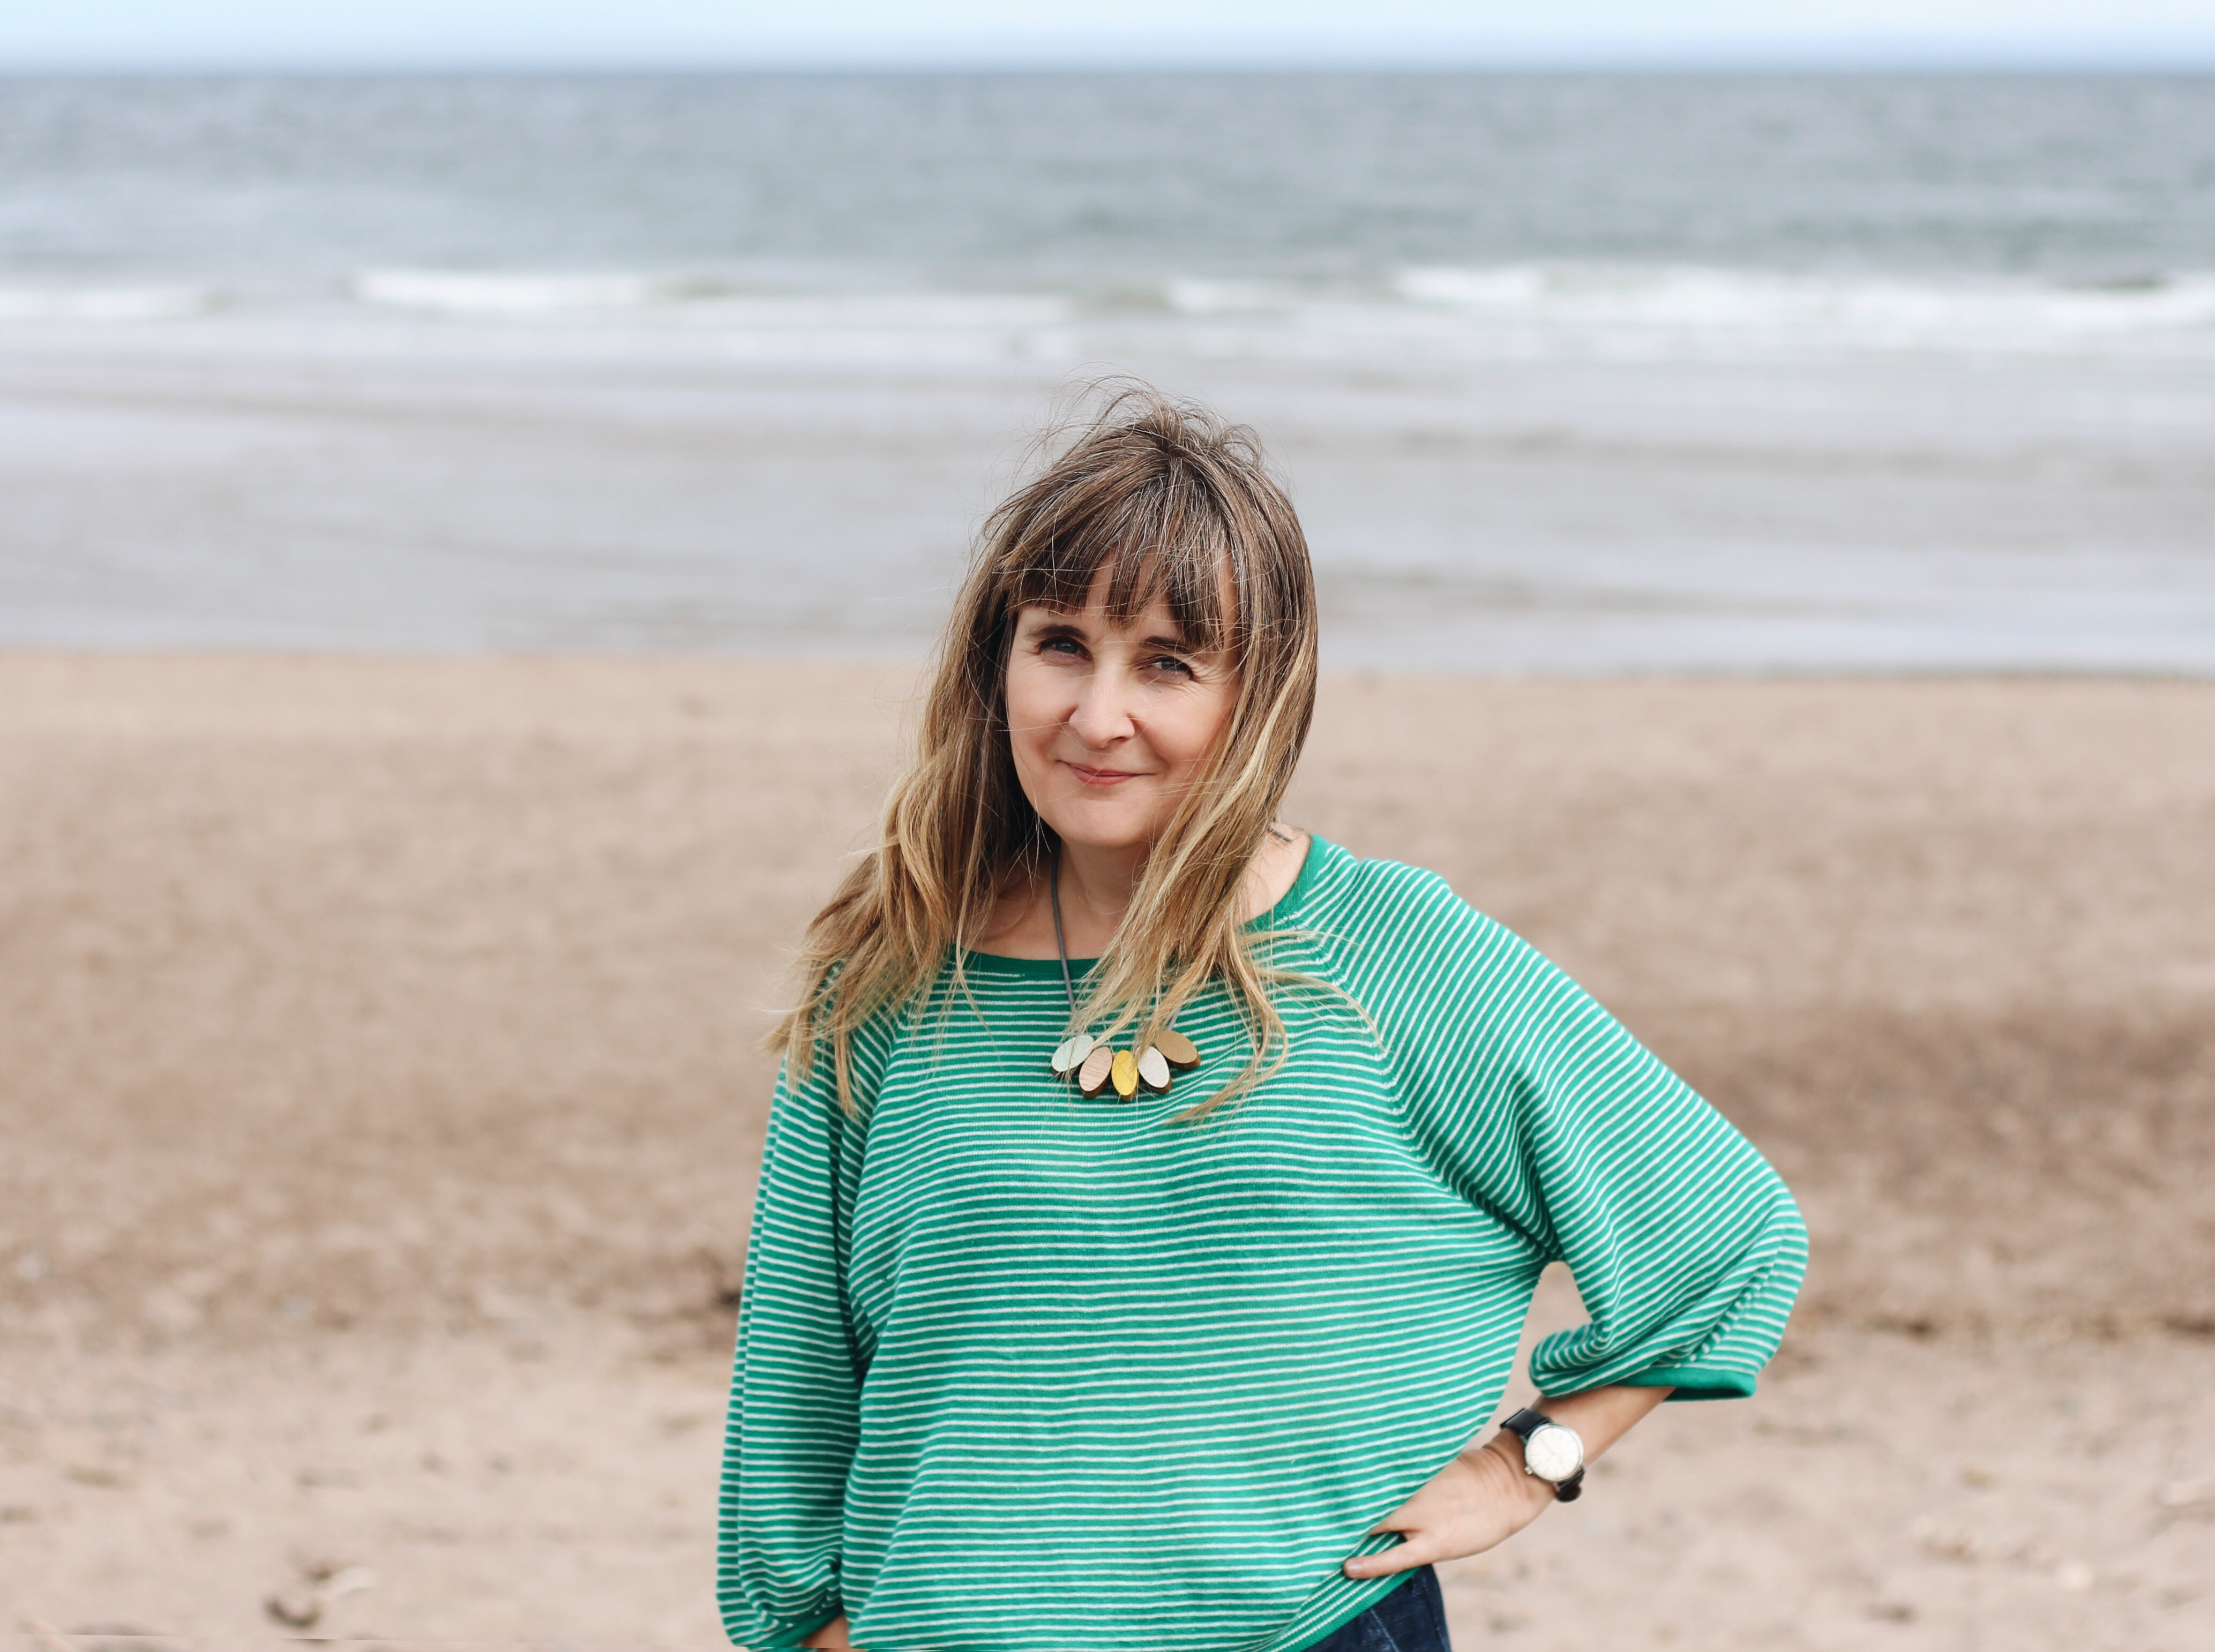 Illustrator Helen Stephens on a beach wearing a green jumper